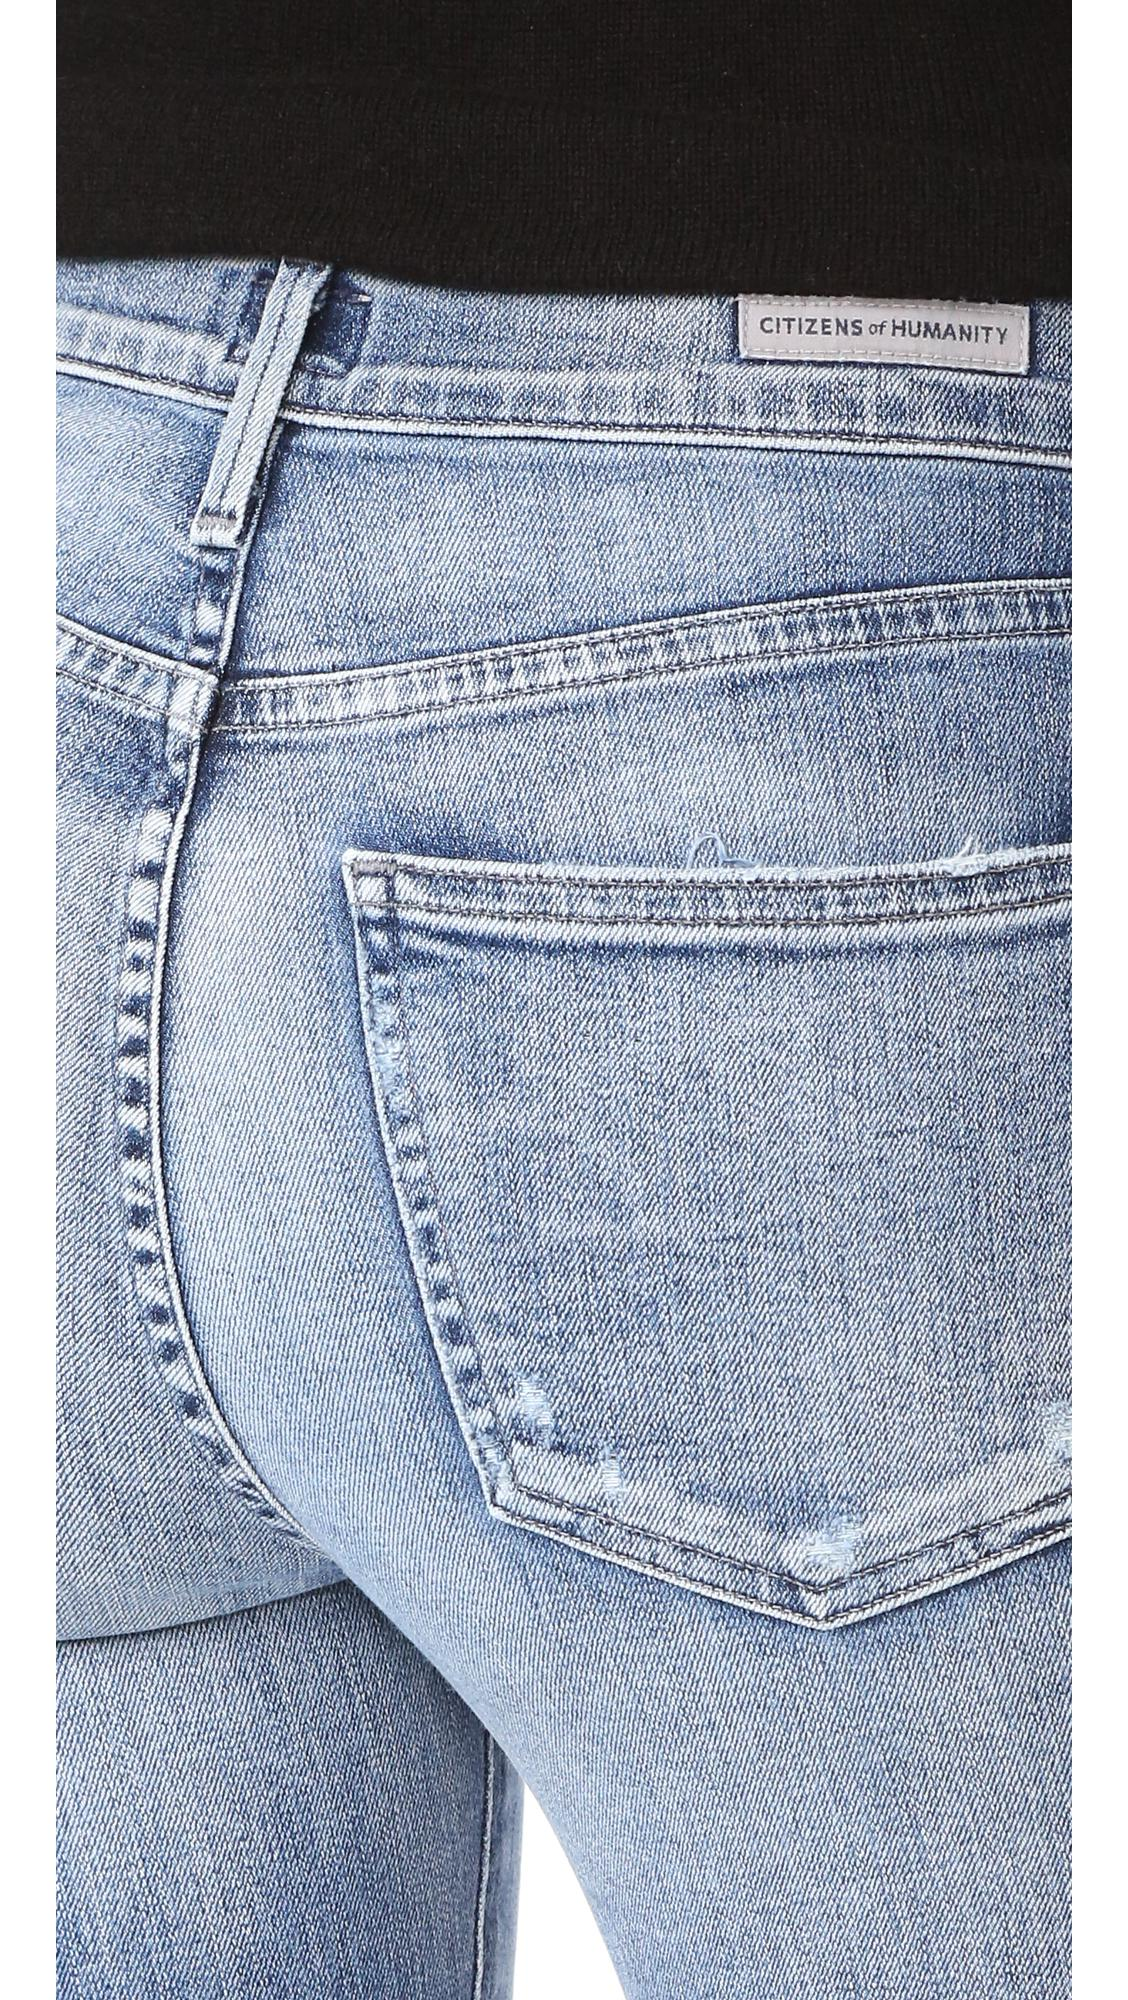 Citizens of Humanity Denim Crop Rocket High Rise Jeans in Blue